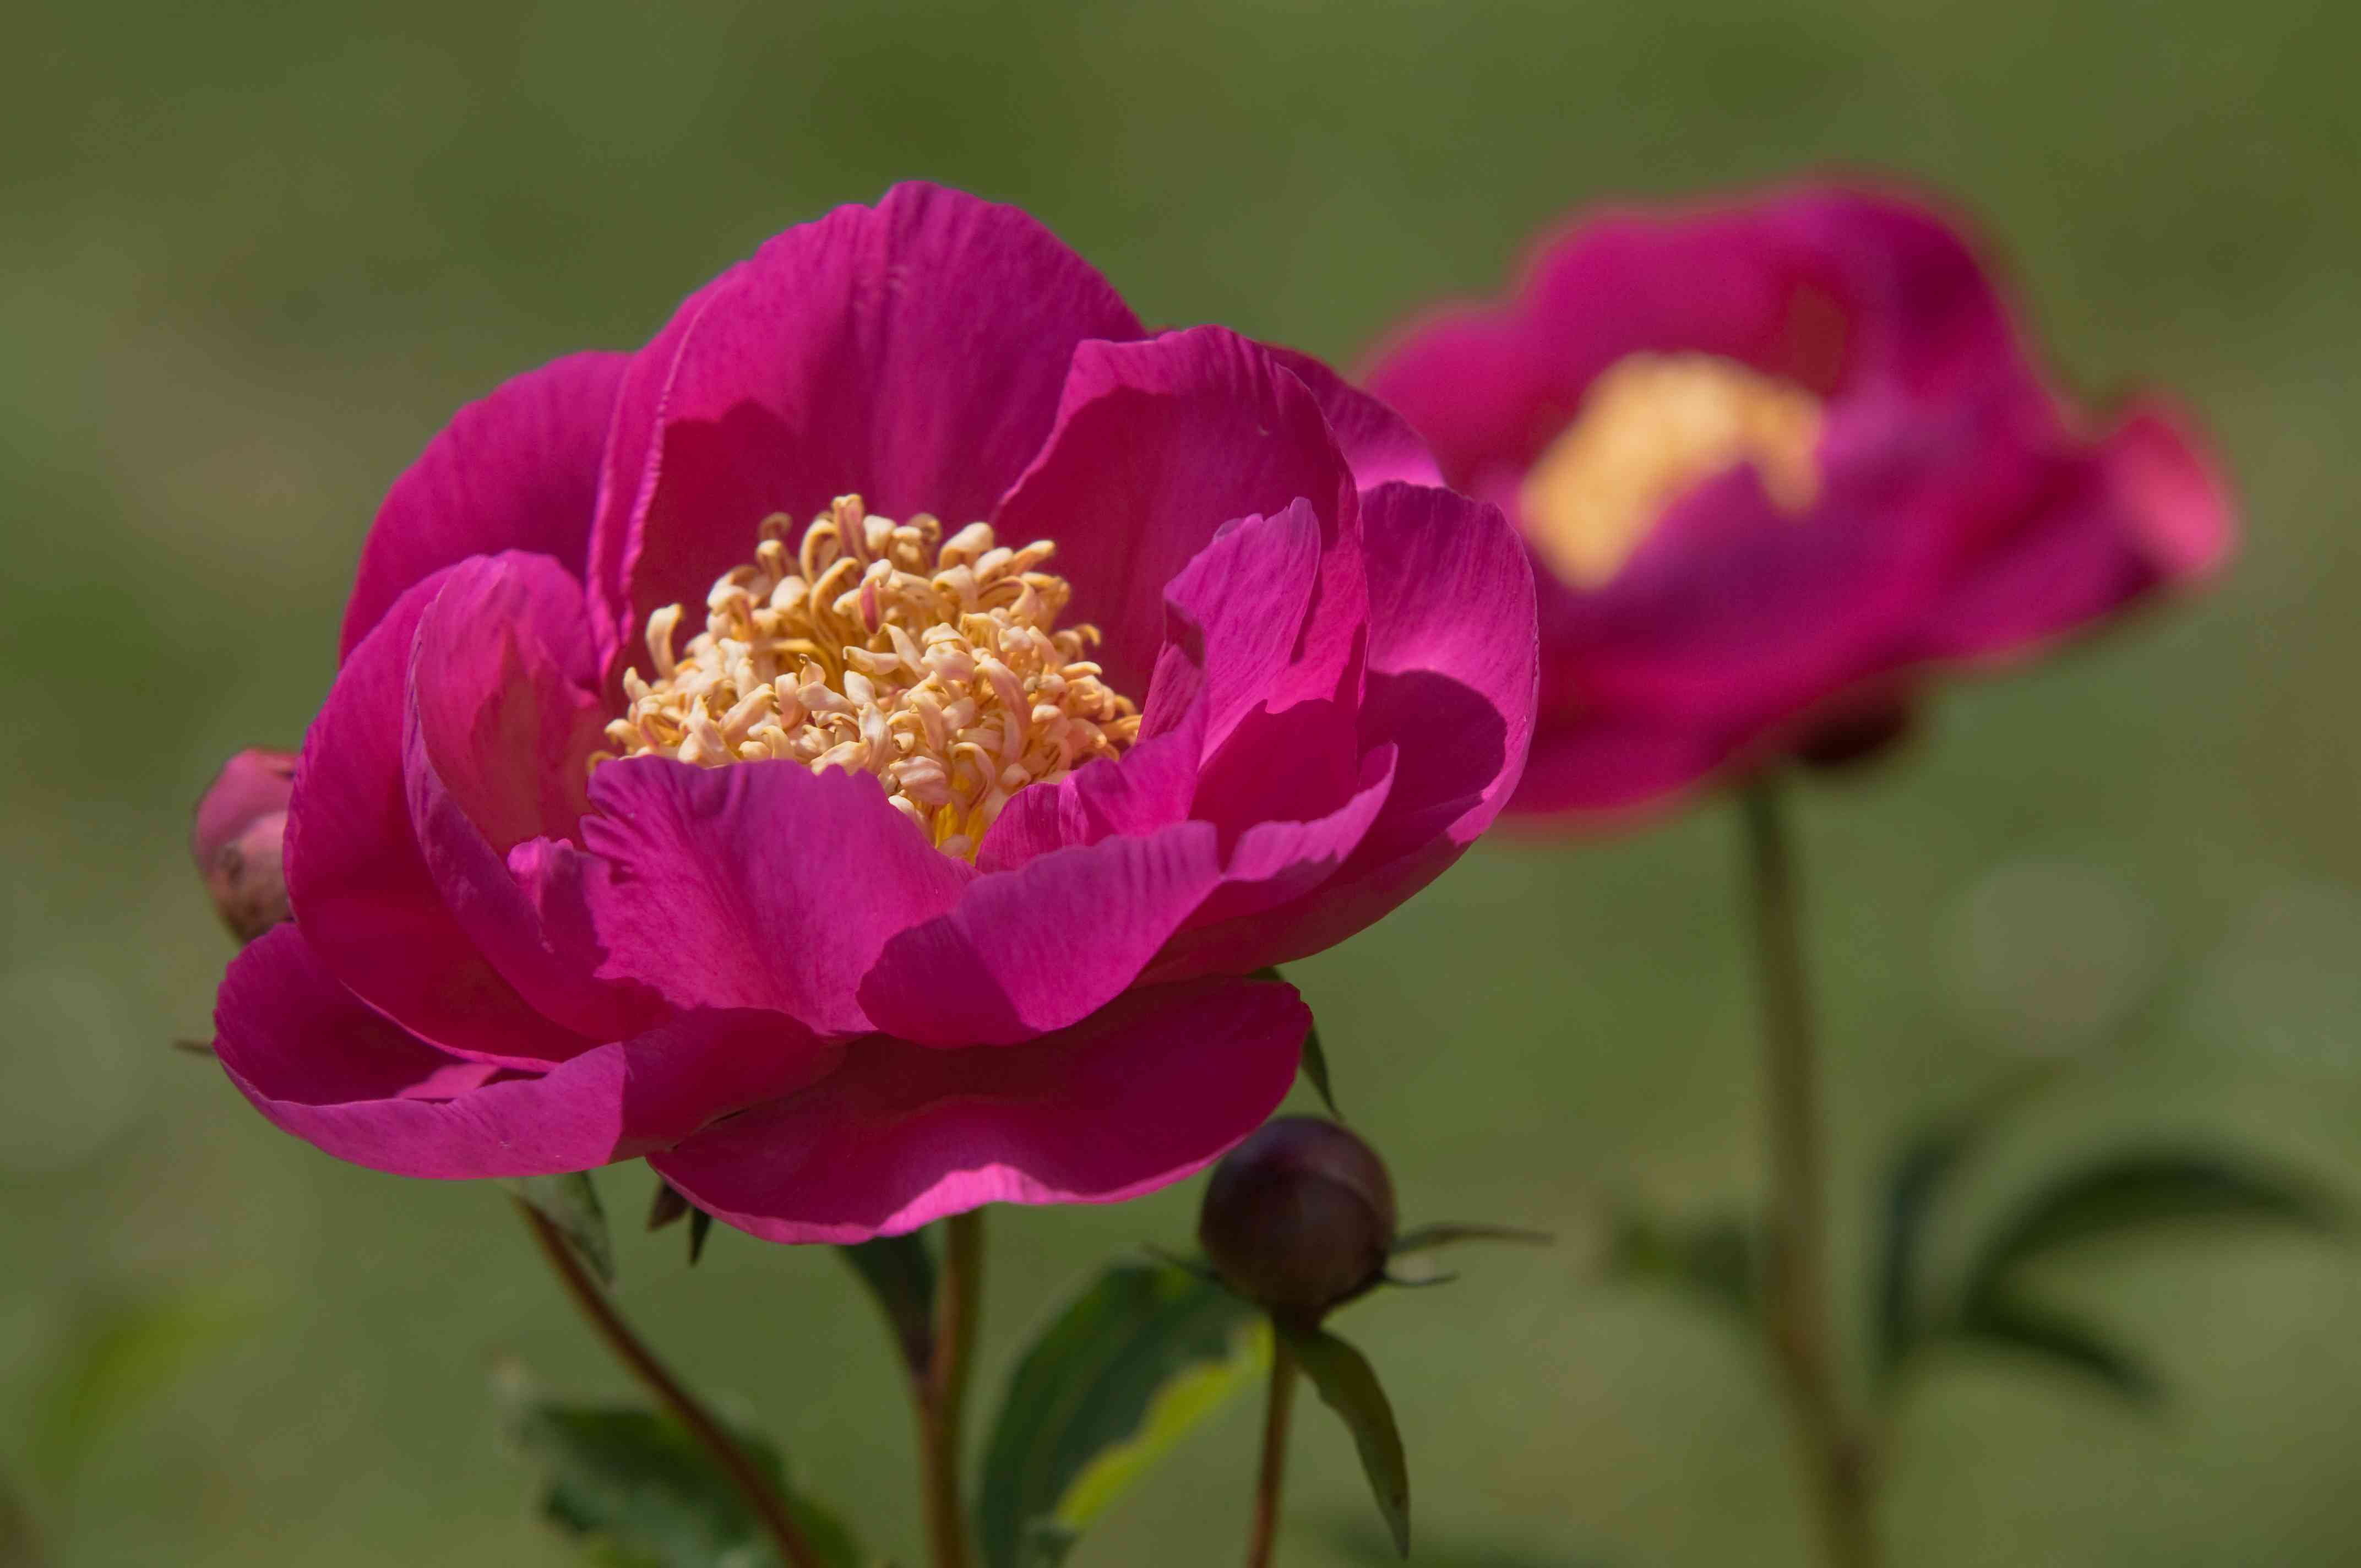 Kame-no-kegoromo peonies with pink flowers and yellow anthers in sunlight